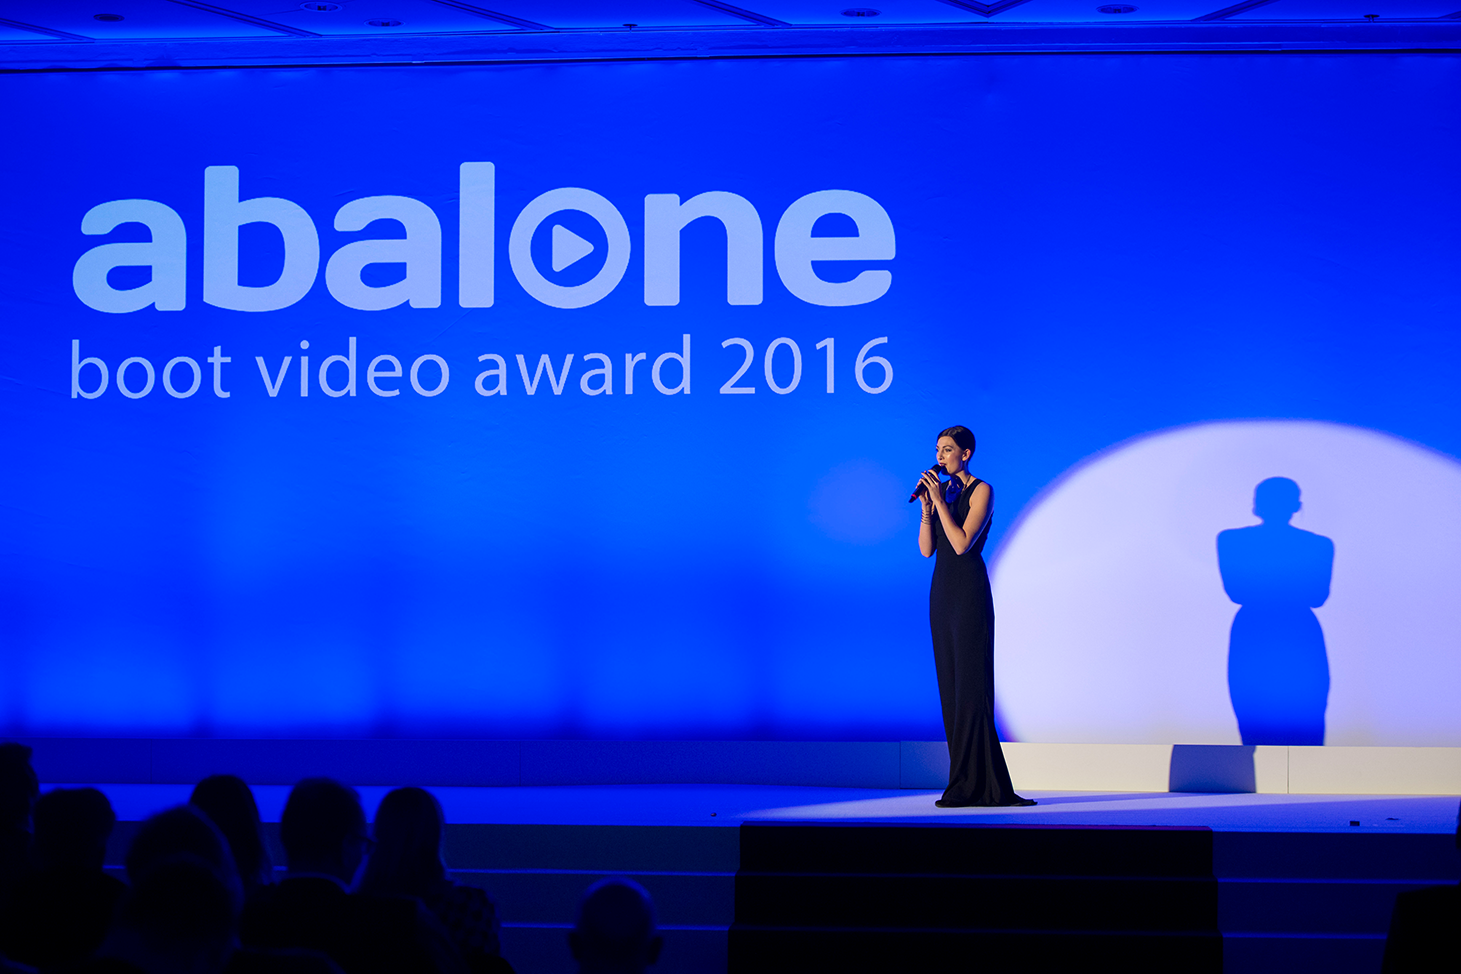 ABALONE BOOT VIDEO AWARD